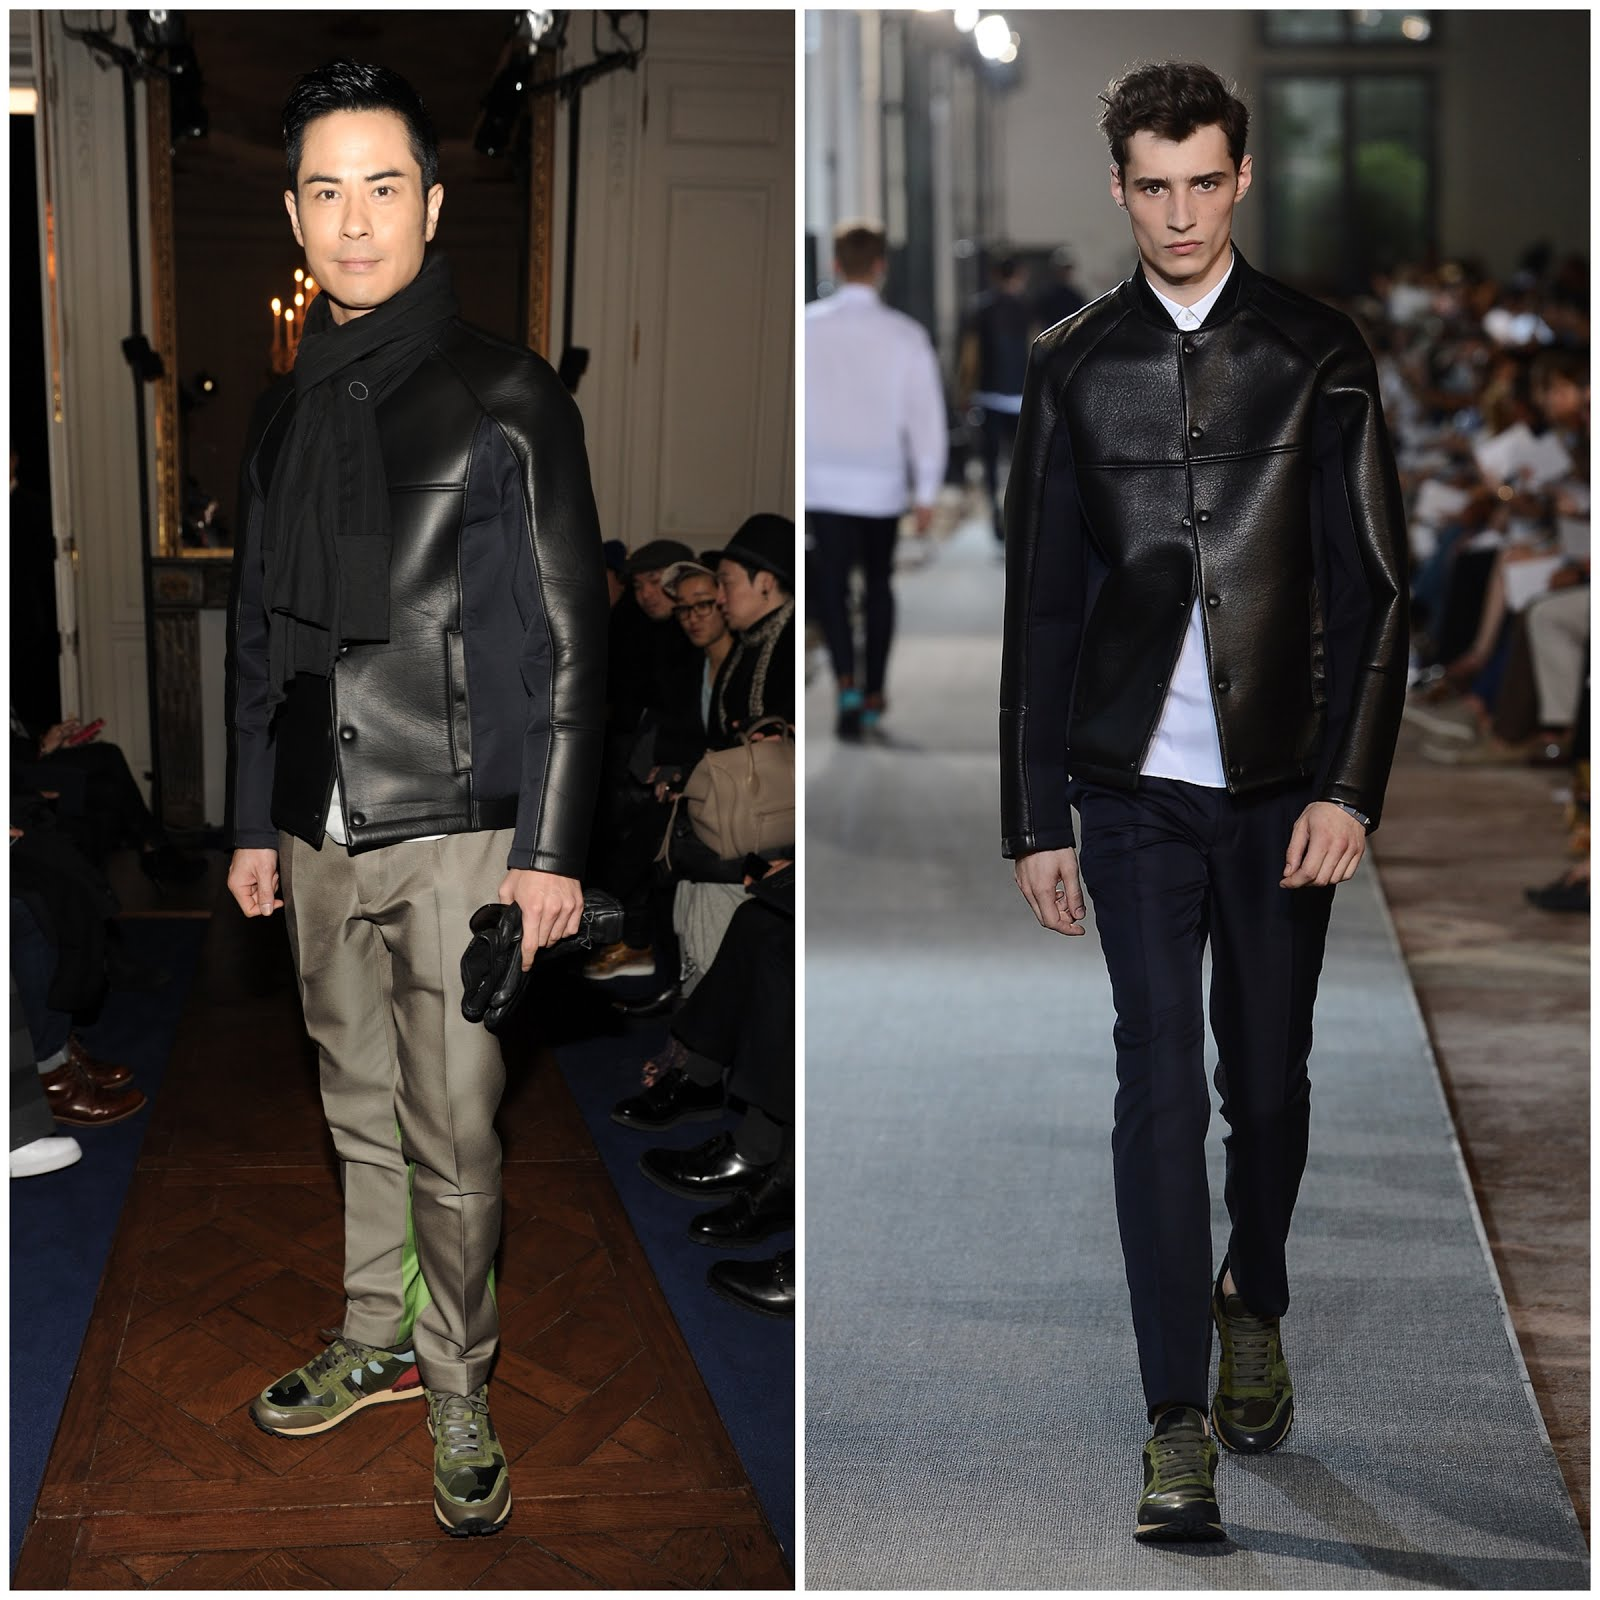 00O00 Menswear Blog Kevin Cheng [郑嘉颖] in Valentino - Valentino Menswear Fall Winter 2013, Paris. Kevin Cheng [郑嘉颖] wore Valentino menswear Spring Summer 2013 camouflauge sneakers available from MatchesFashion.com